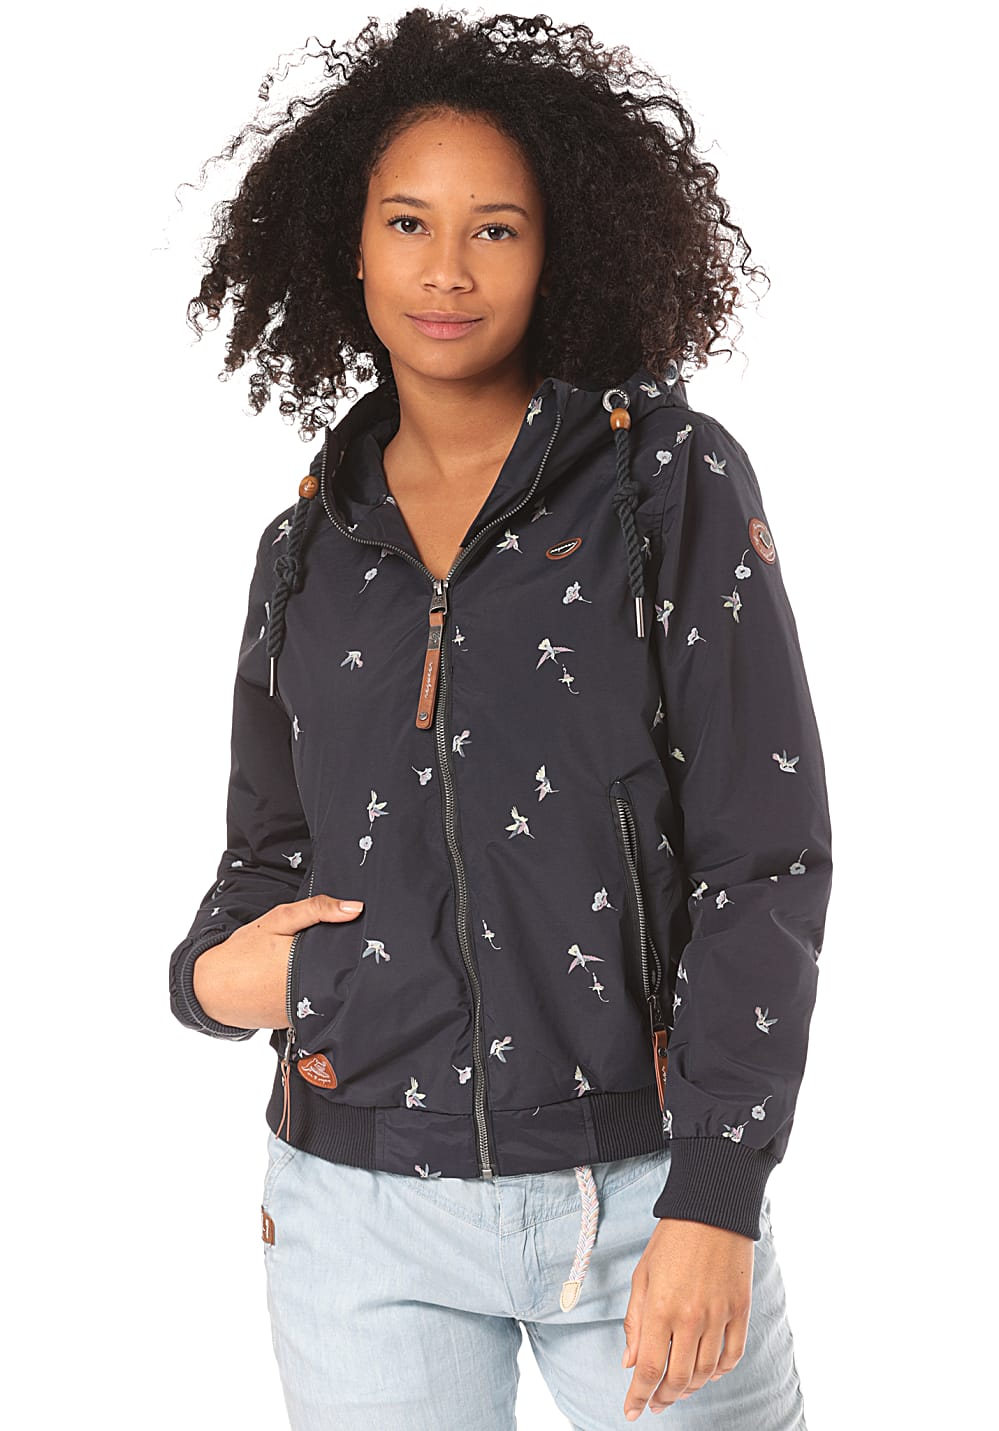 Jacken - ragwear Nuggie Birds Jacke für Damen Blau  - Onlineshop Planet Sports